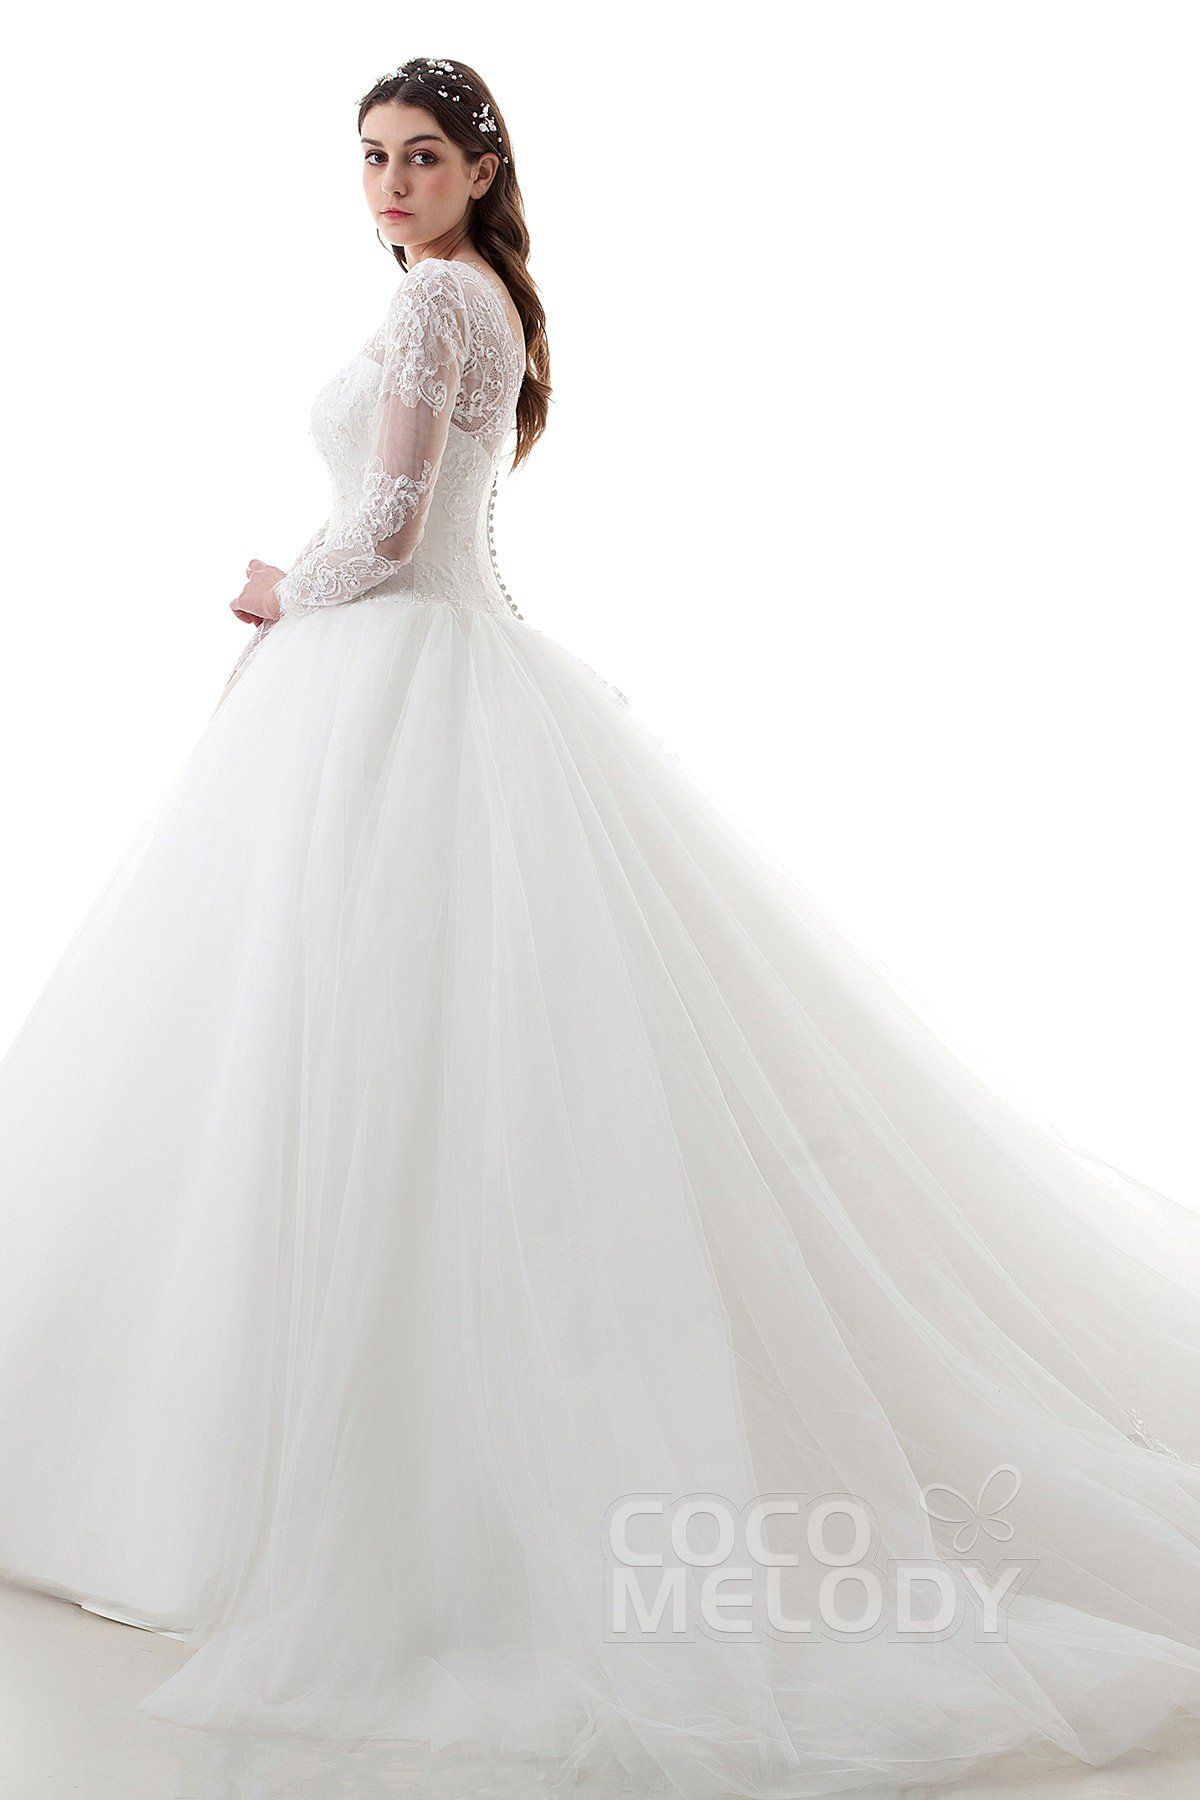 2c8146679270e3 Latest Ball Gown Illusion Lace and Tulle Ivory Long Sleeve Open Back  Wedding Dress with Appliques and Beading LD4457  cocomelody  weddingdress  ...